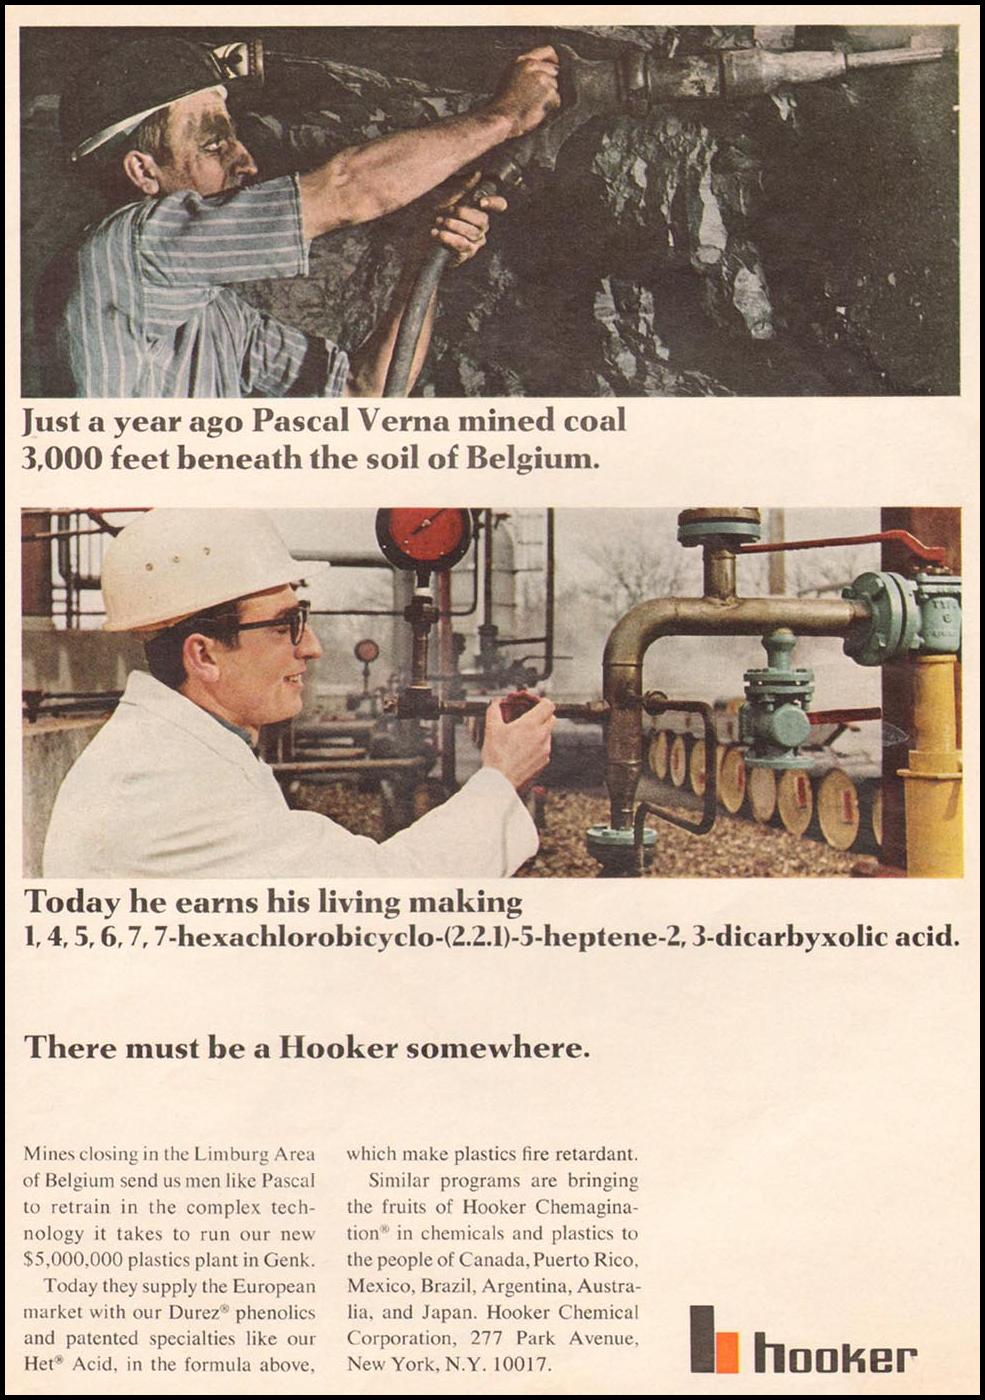 INDUSTRIAL CHEMICALS NEWSWEEK 06/17/1968